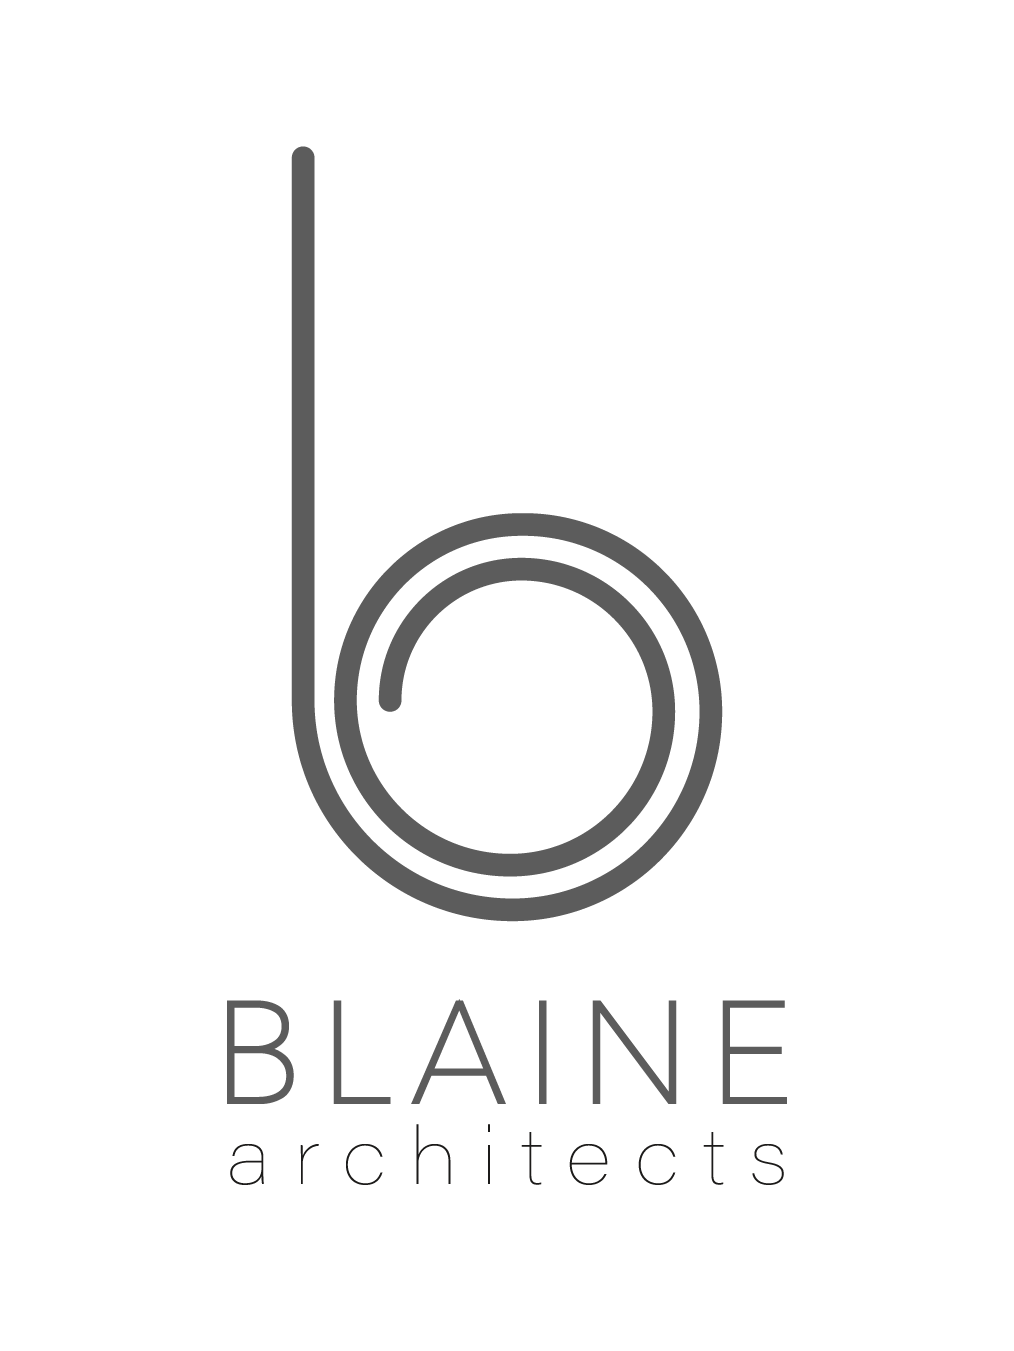 Blaine Architects